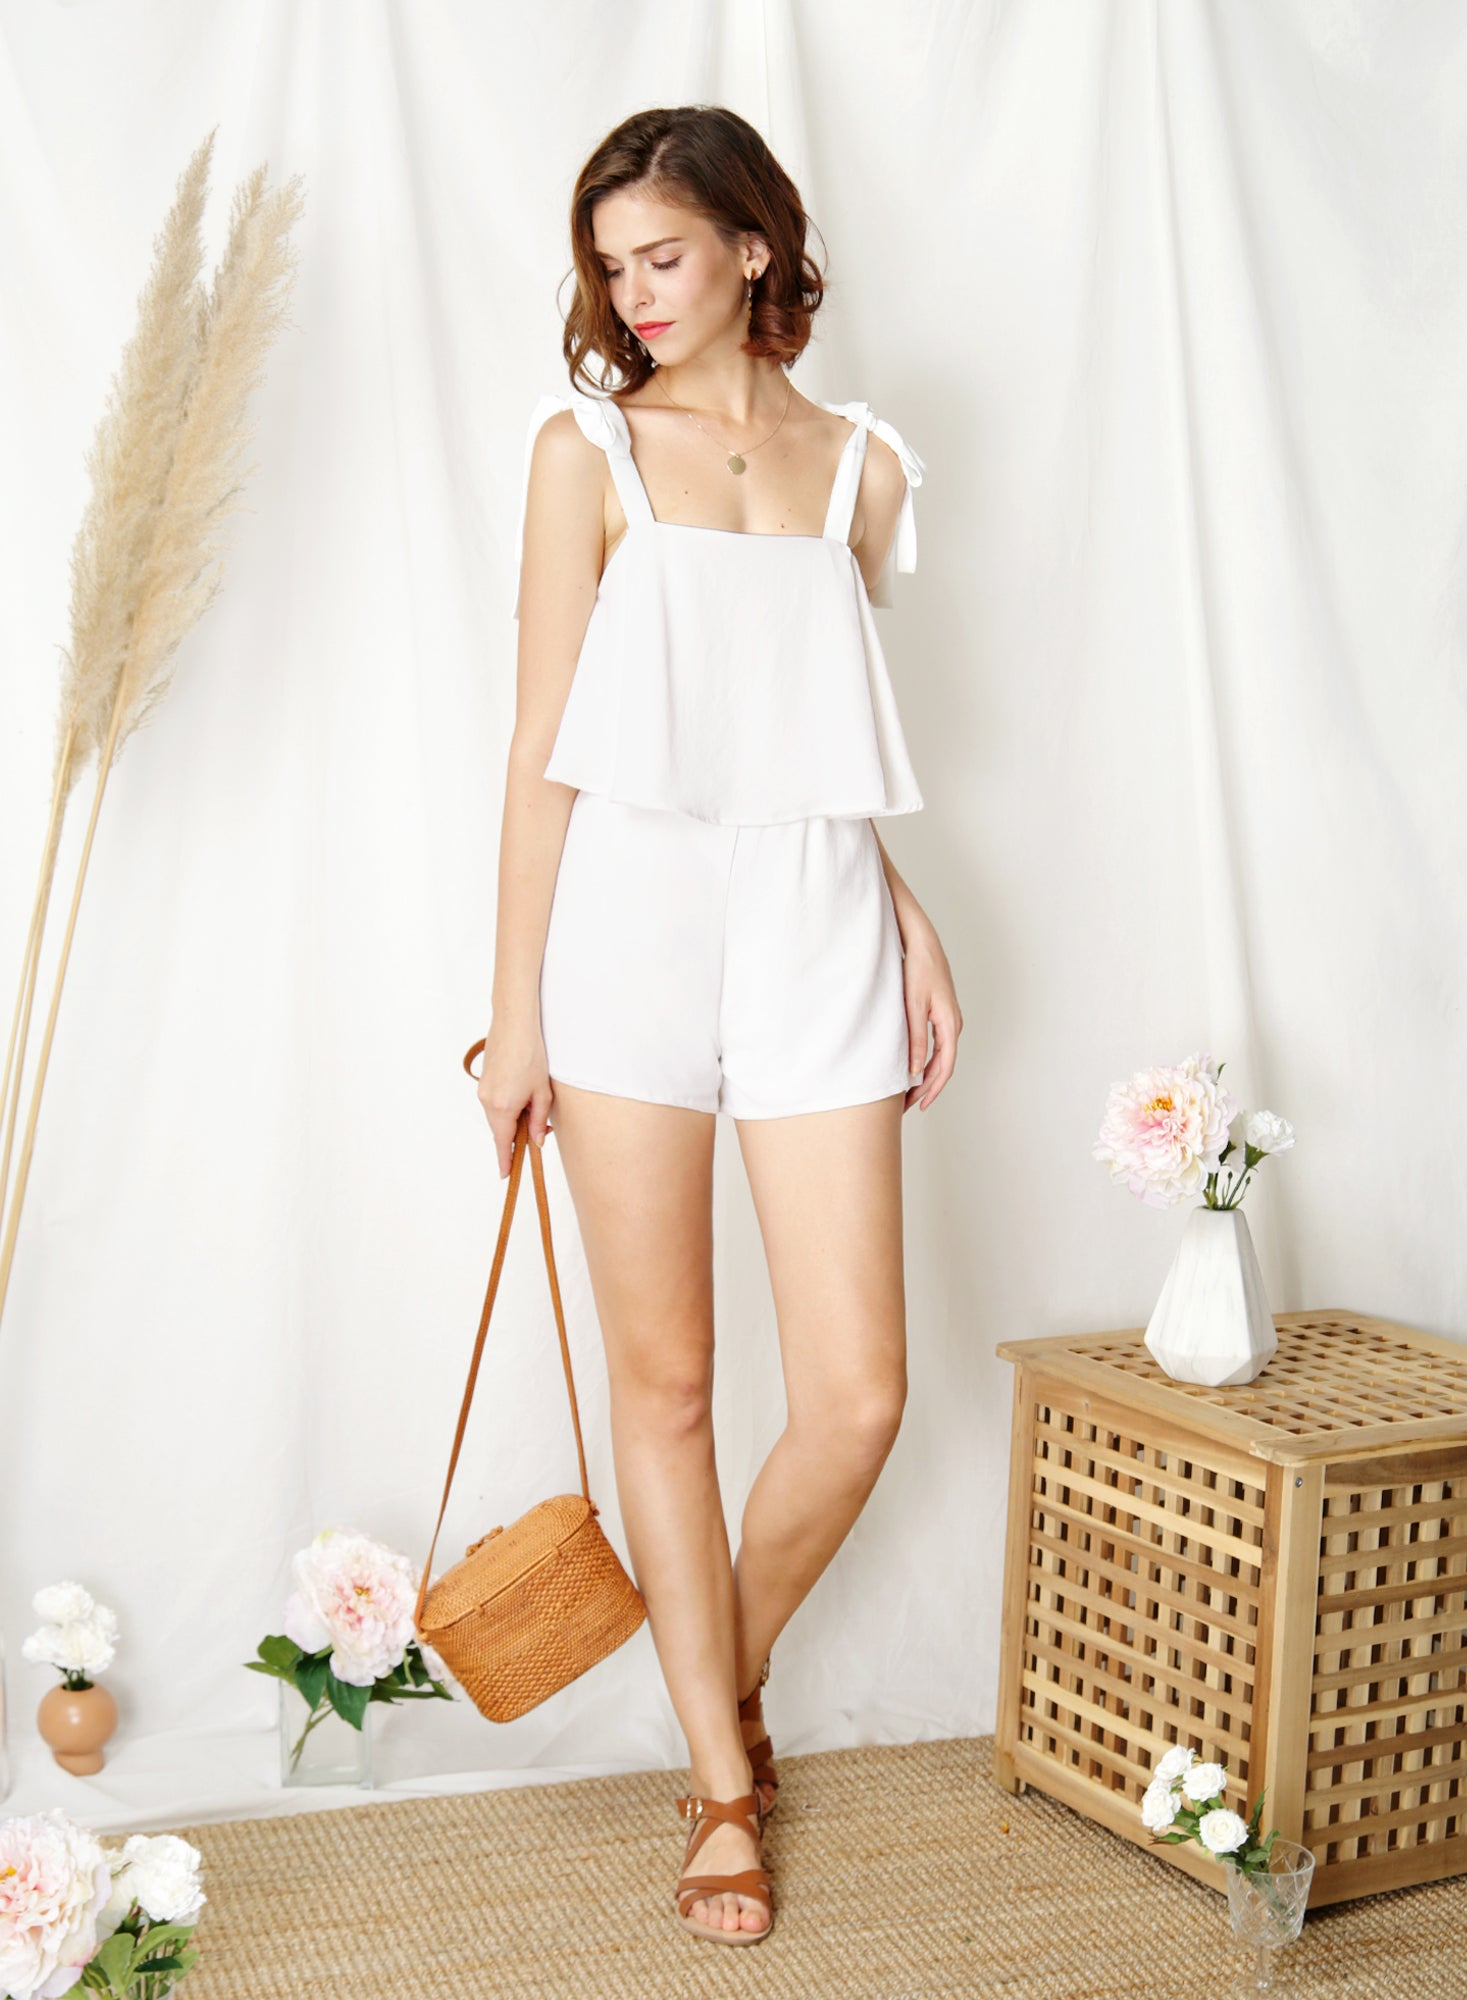 Adventure Tie Shoulders Romper (White) at $ 41.50 only sold at And Well Dressed Online Fashion Store Singapore